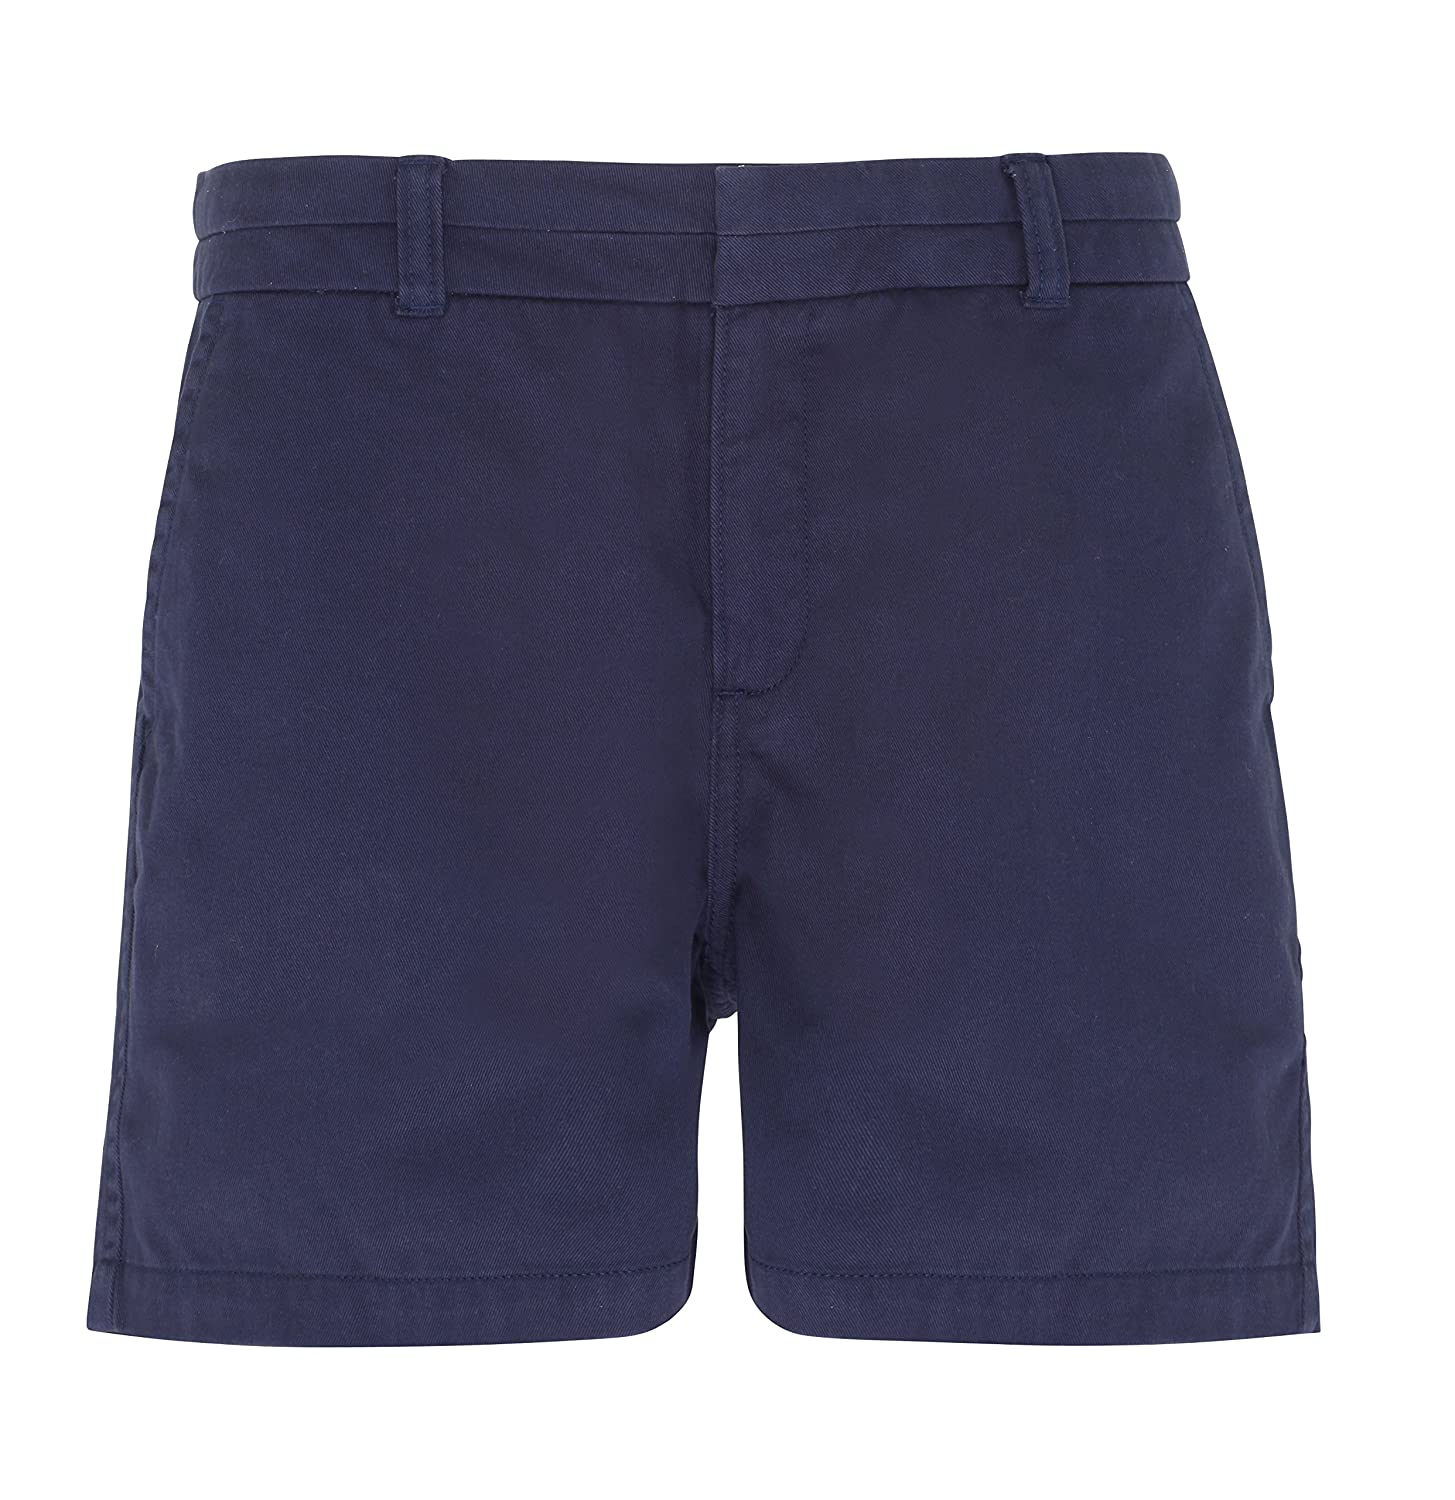 Asquith & Fox Women's Chino Shorts. XS - 2XL AQ061